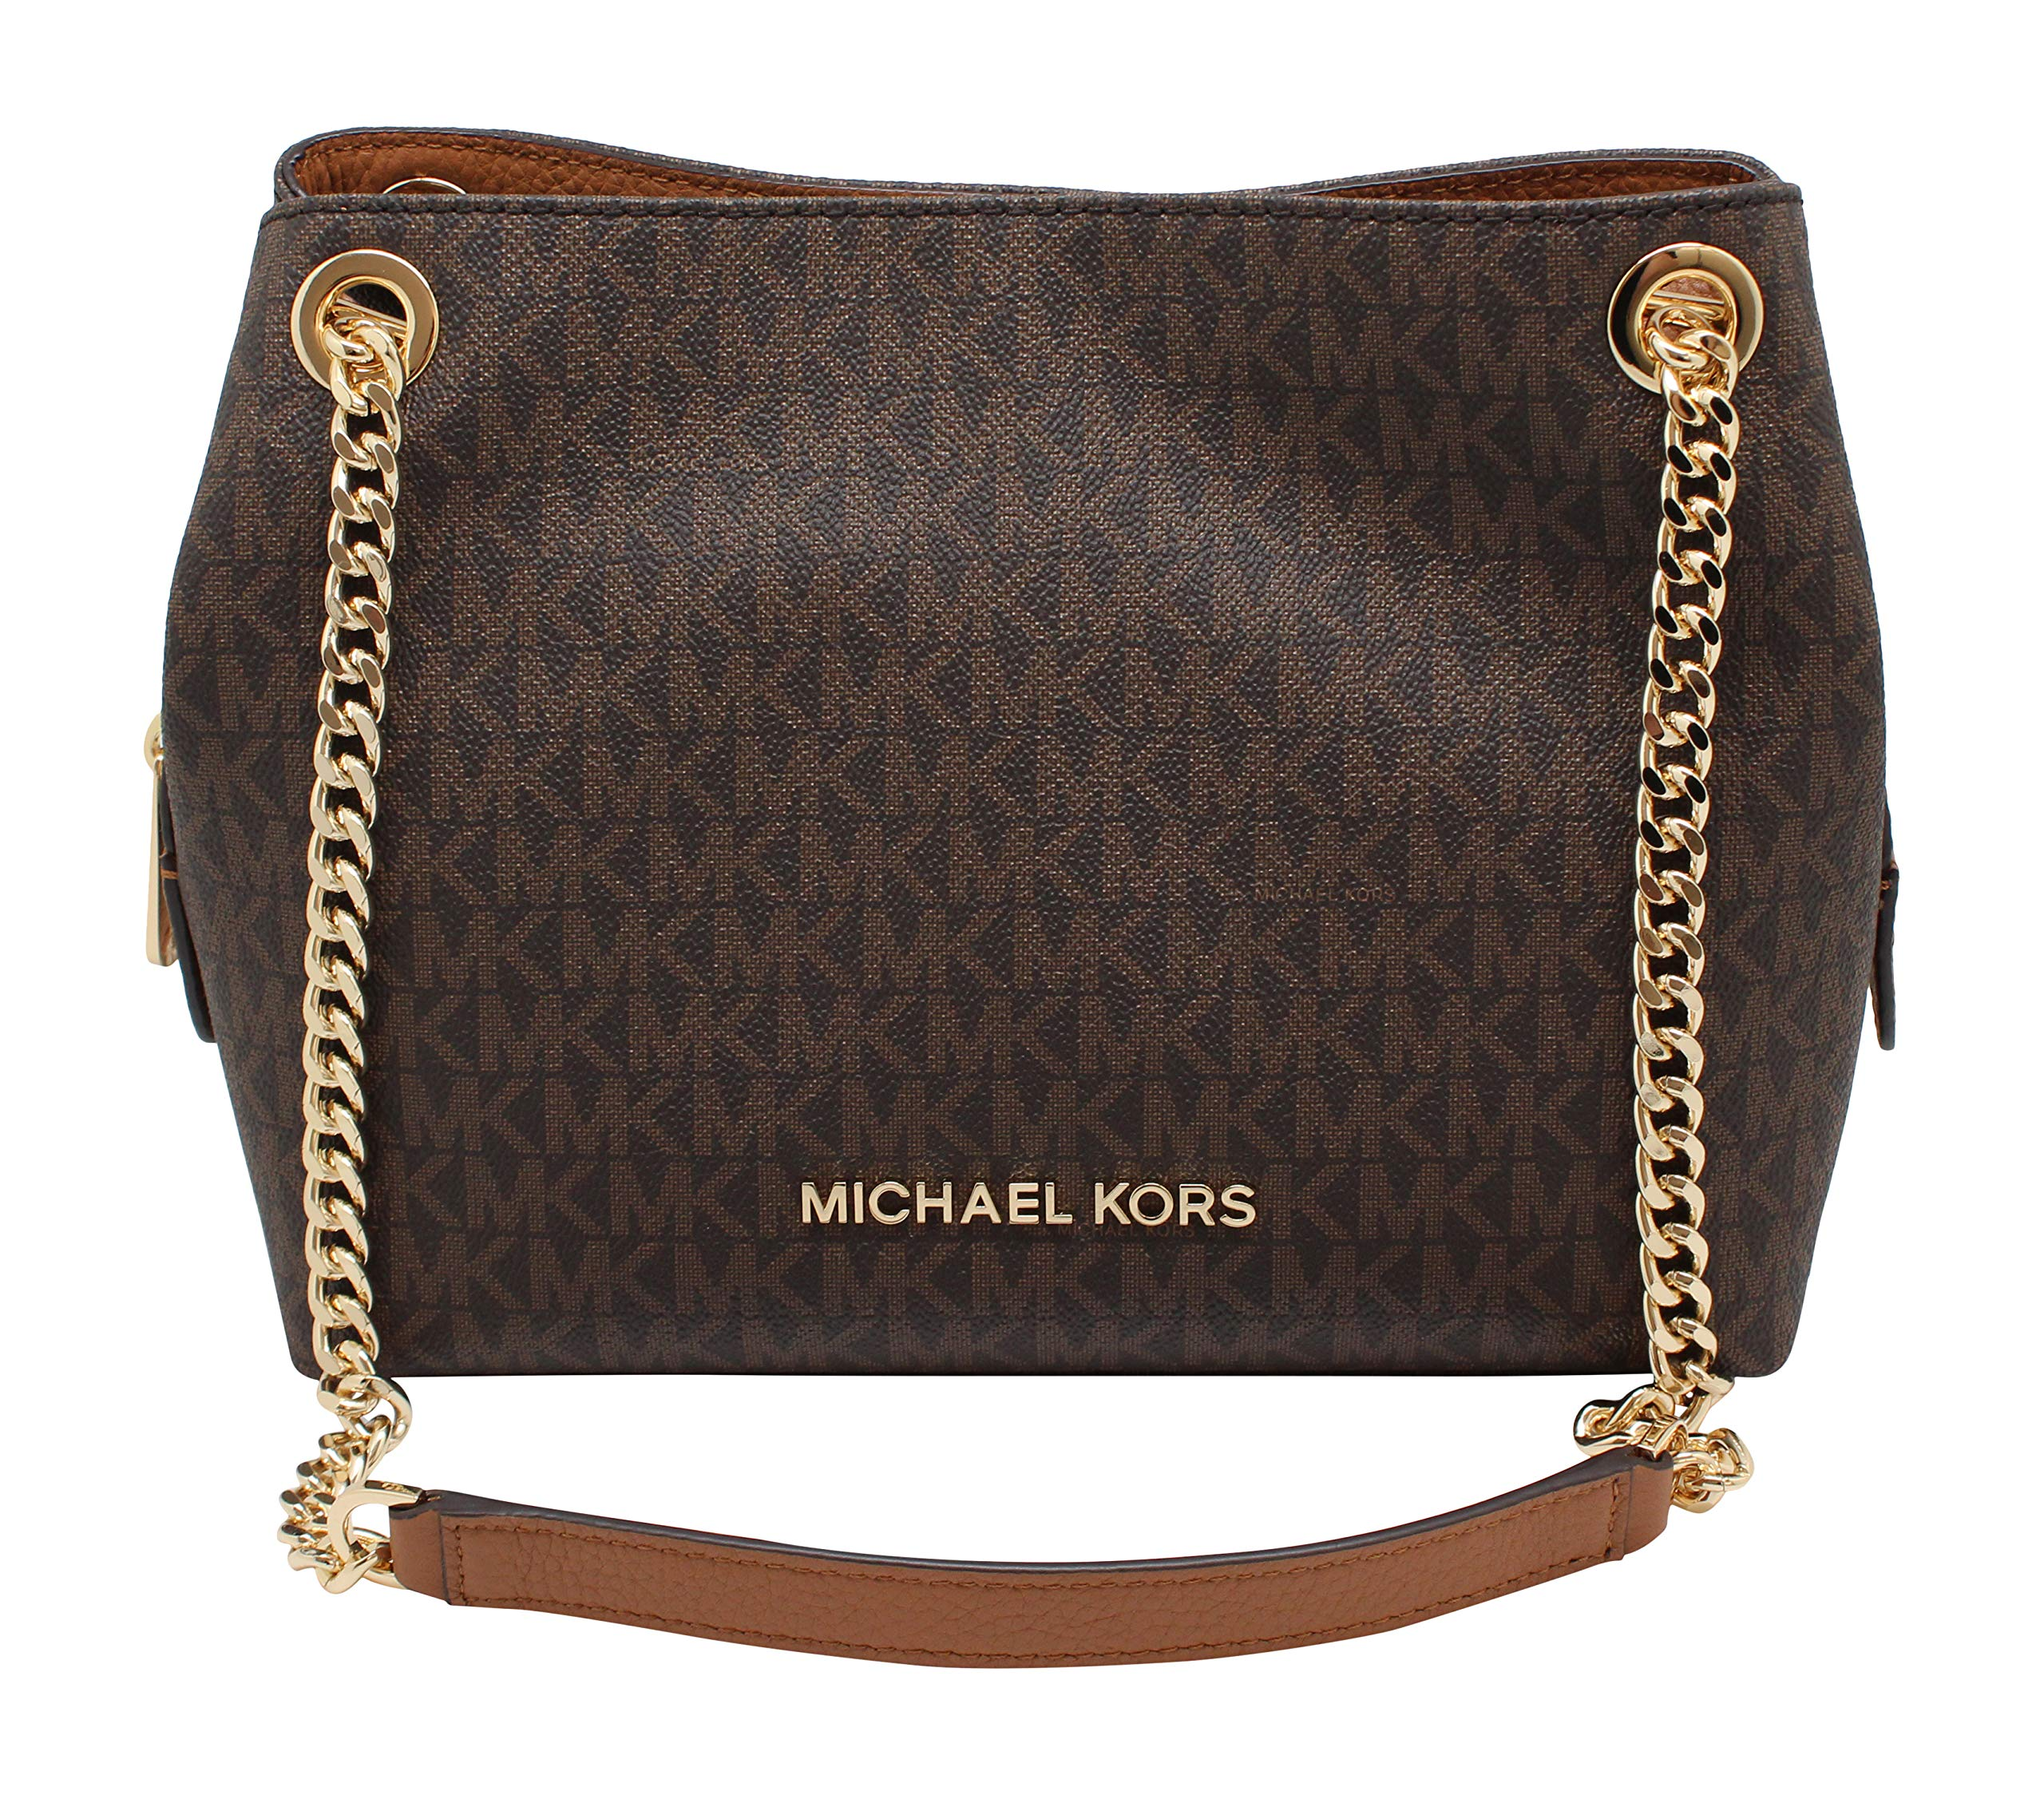 Michael Kors Medium Chain Messenger Signature Bag